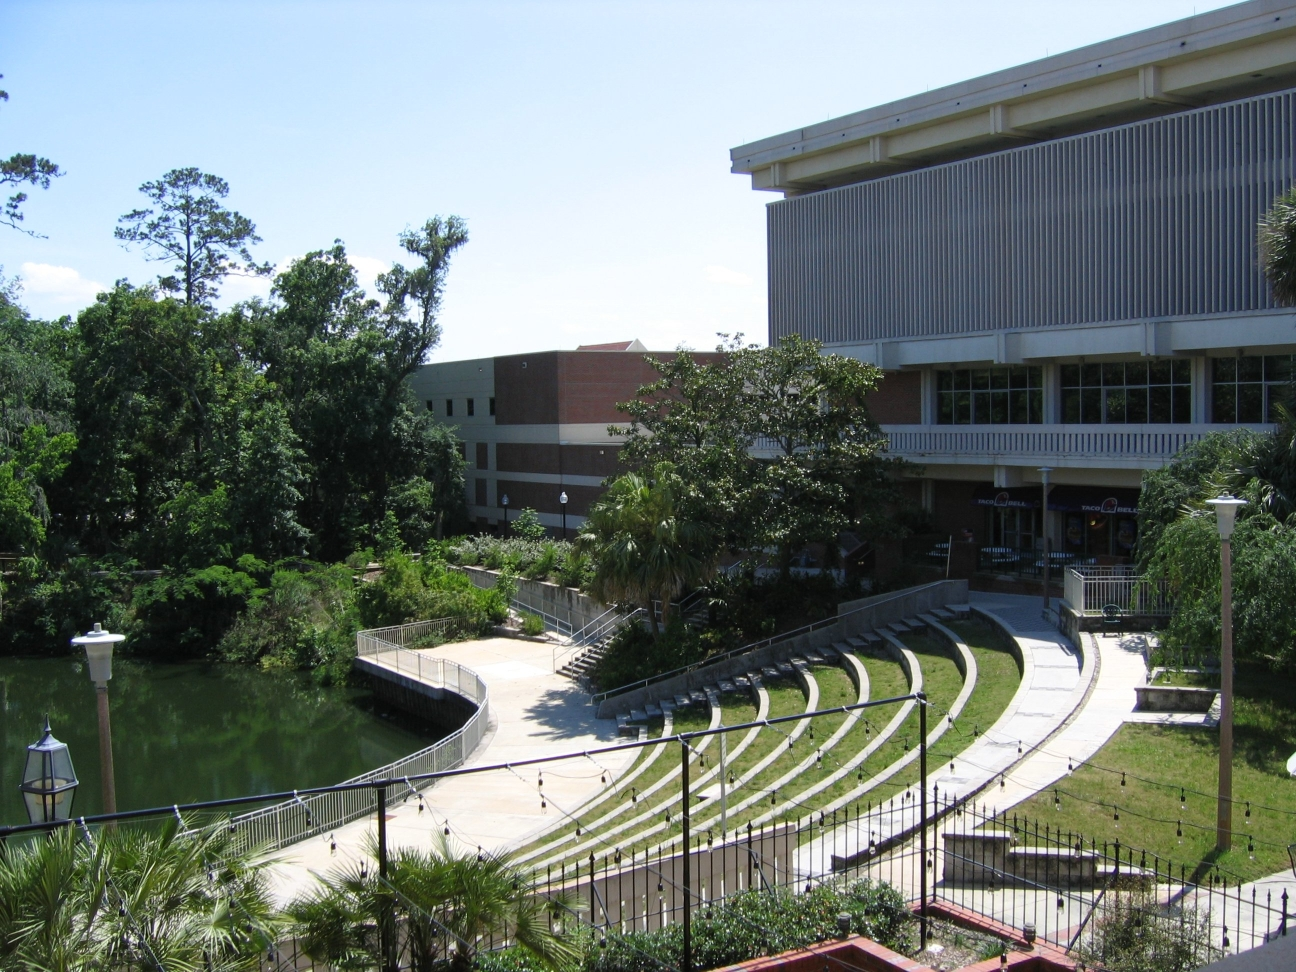 image of University of Florida